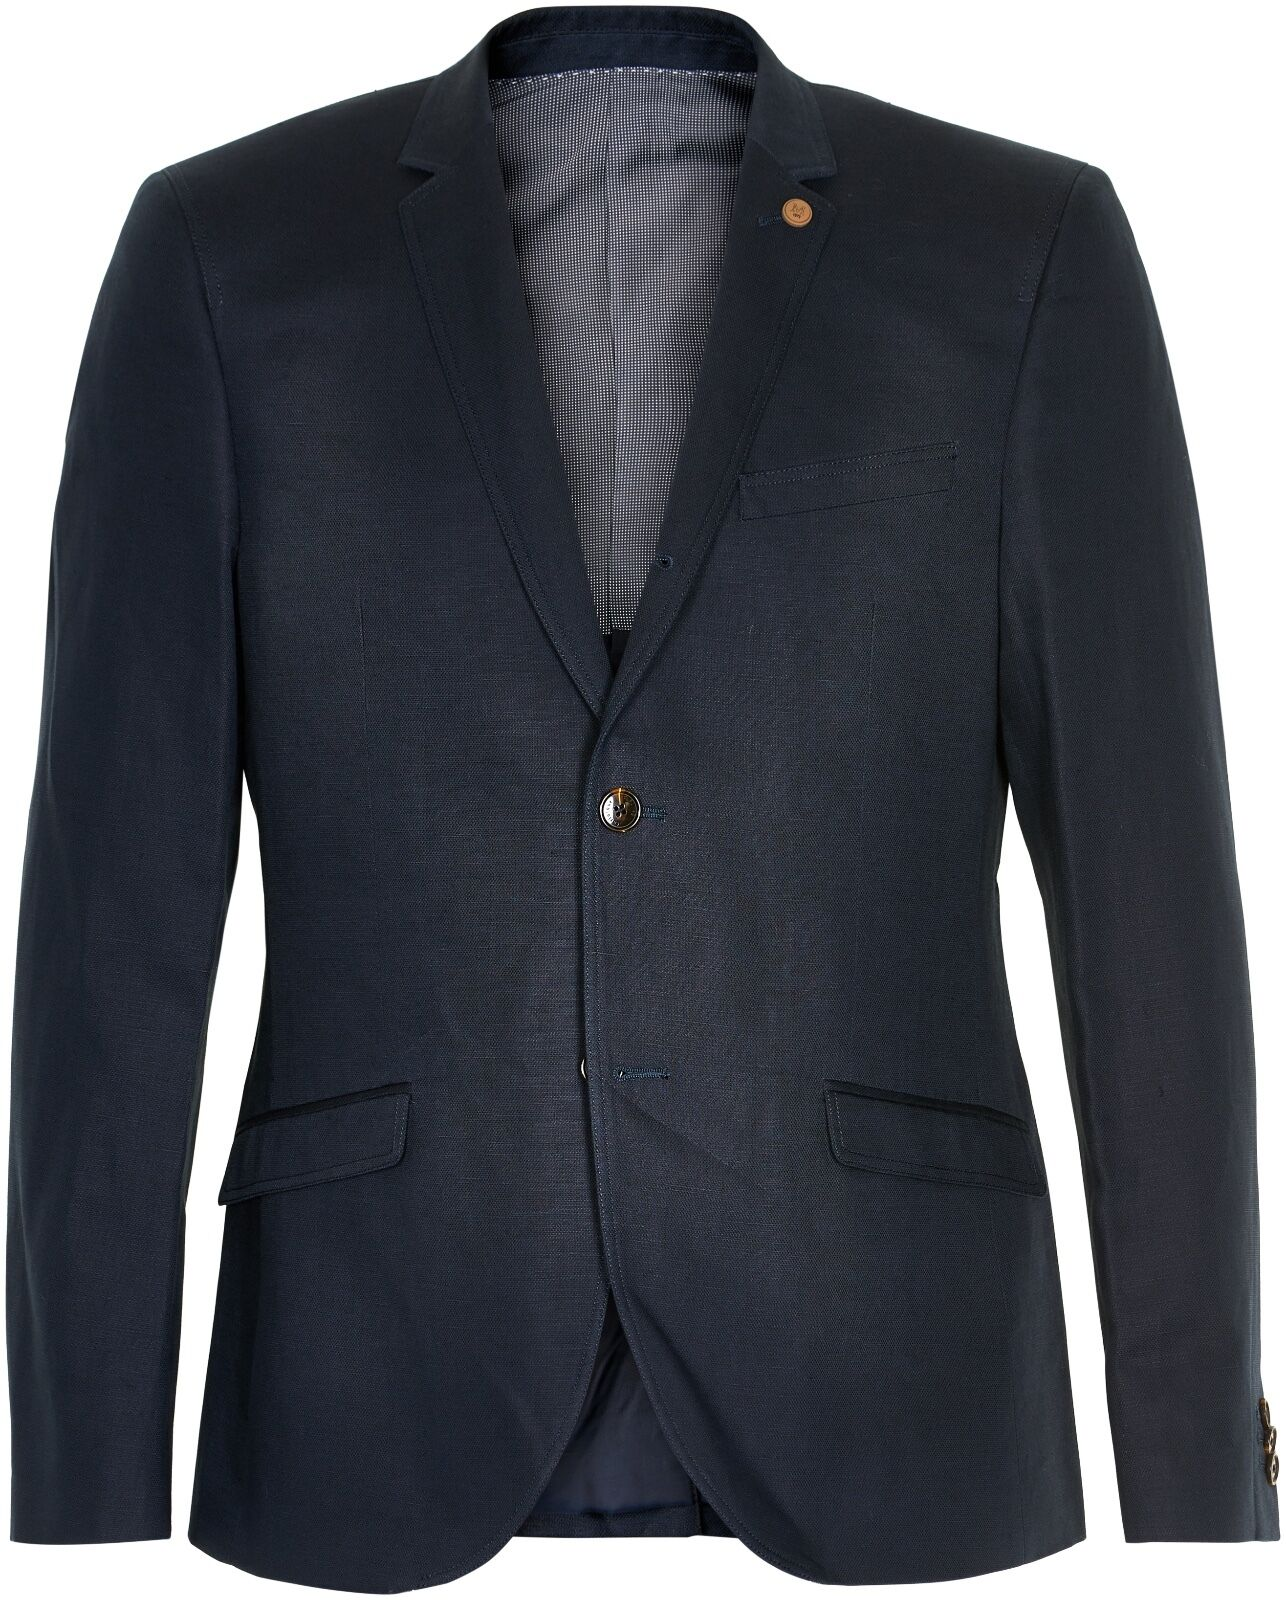 Matinique Linen/Cotton Blazer/Dark Navy - UK38/EU48 WAS